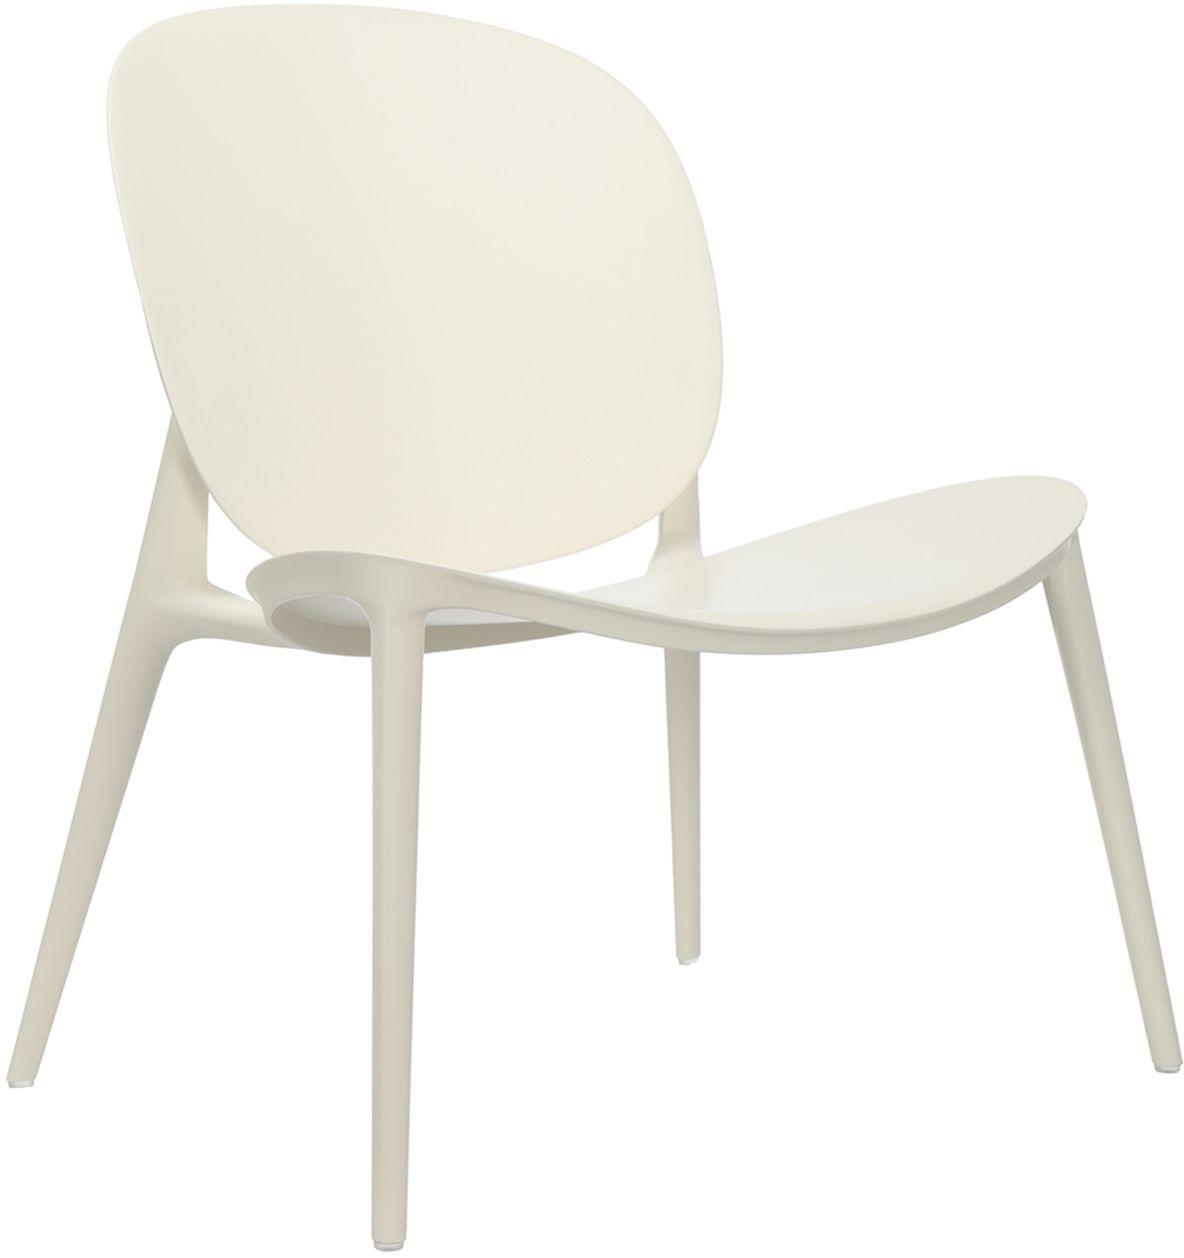 Sillón de plástico Be Bop, Polipropileno modificado, Blanco, An 69 x F 62 cm